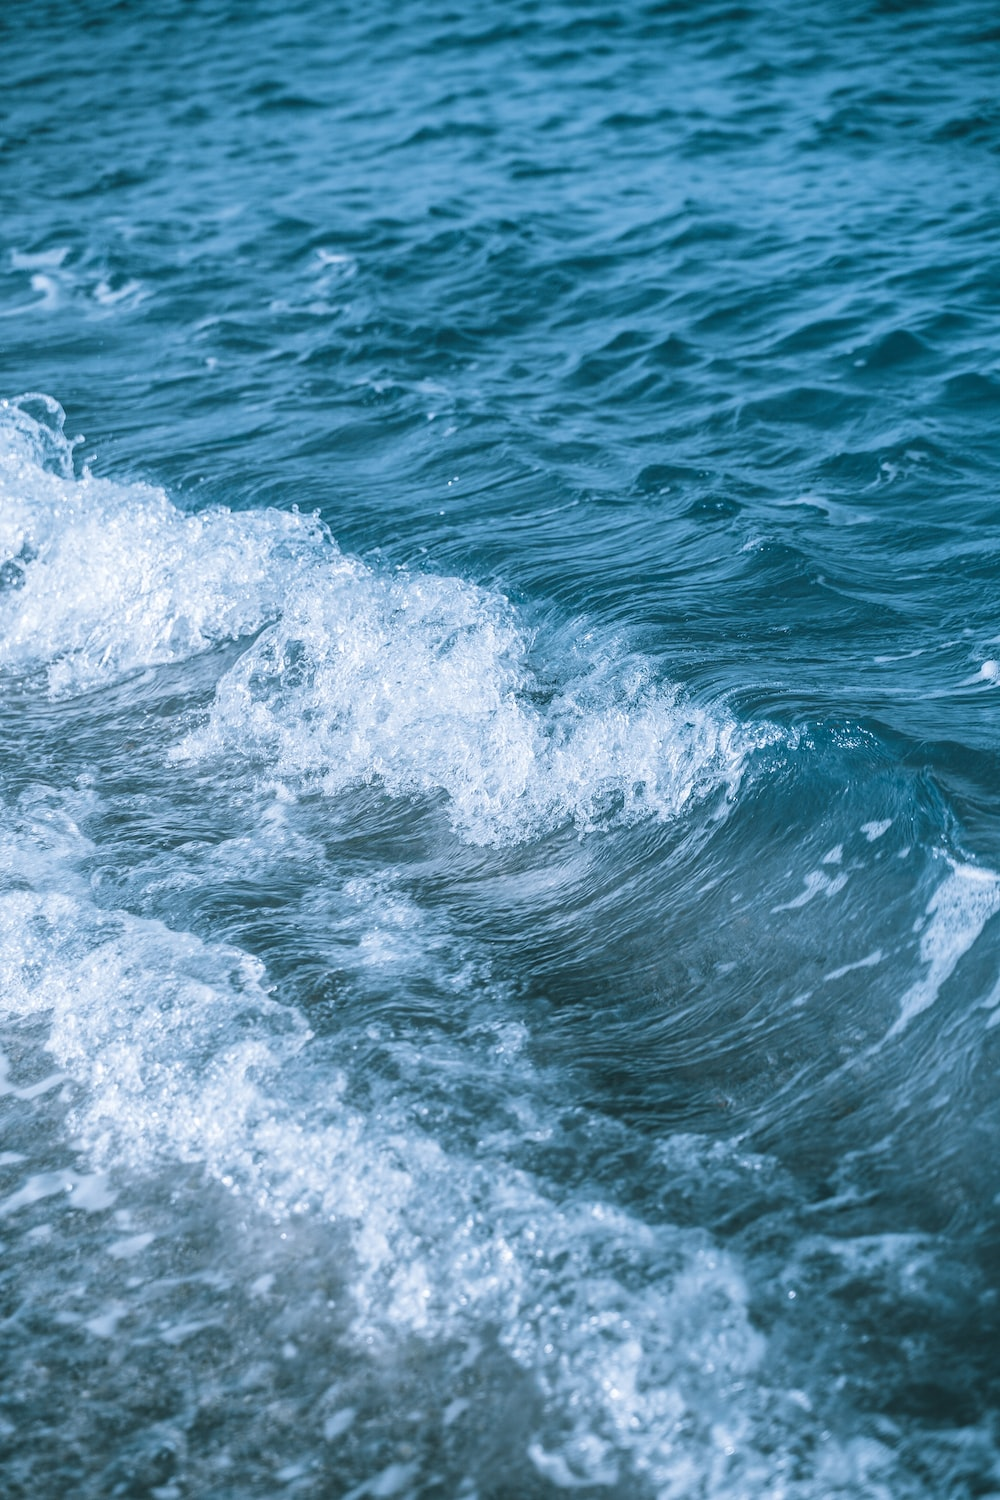 water waves on blue sea during daytime